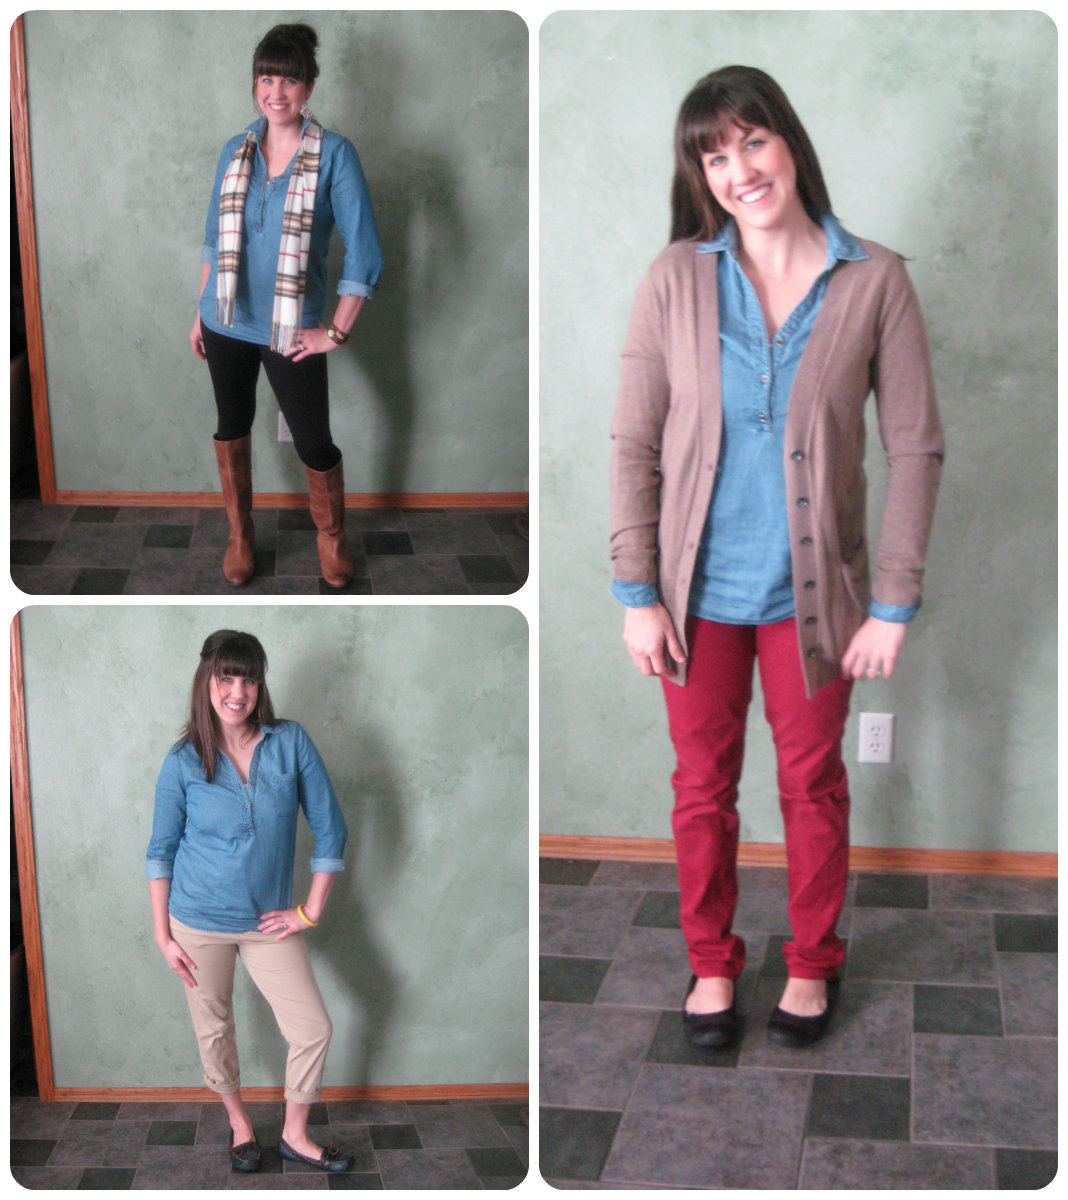 7 Ways to Wear a Chambray Shirt #RealMomStyle - momma in flip flops